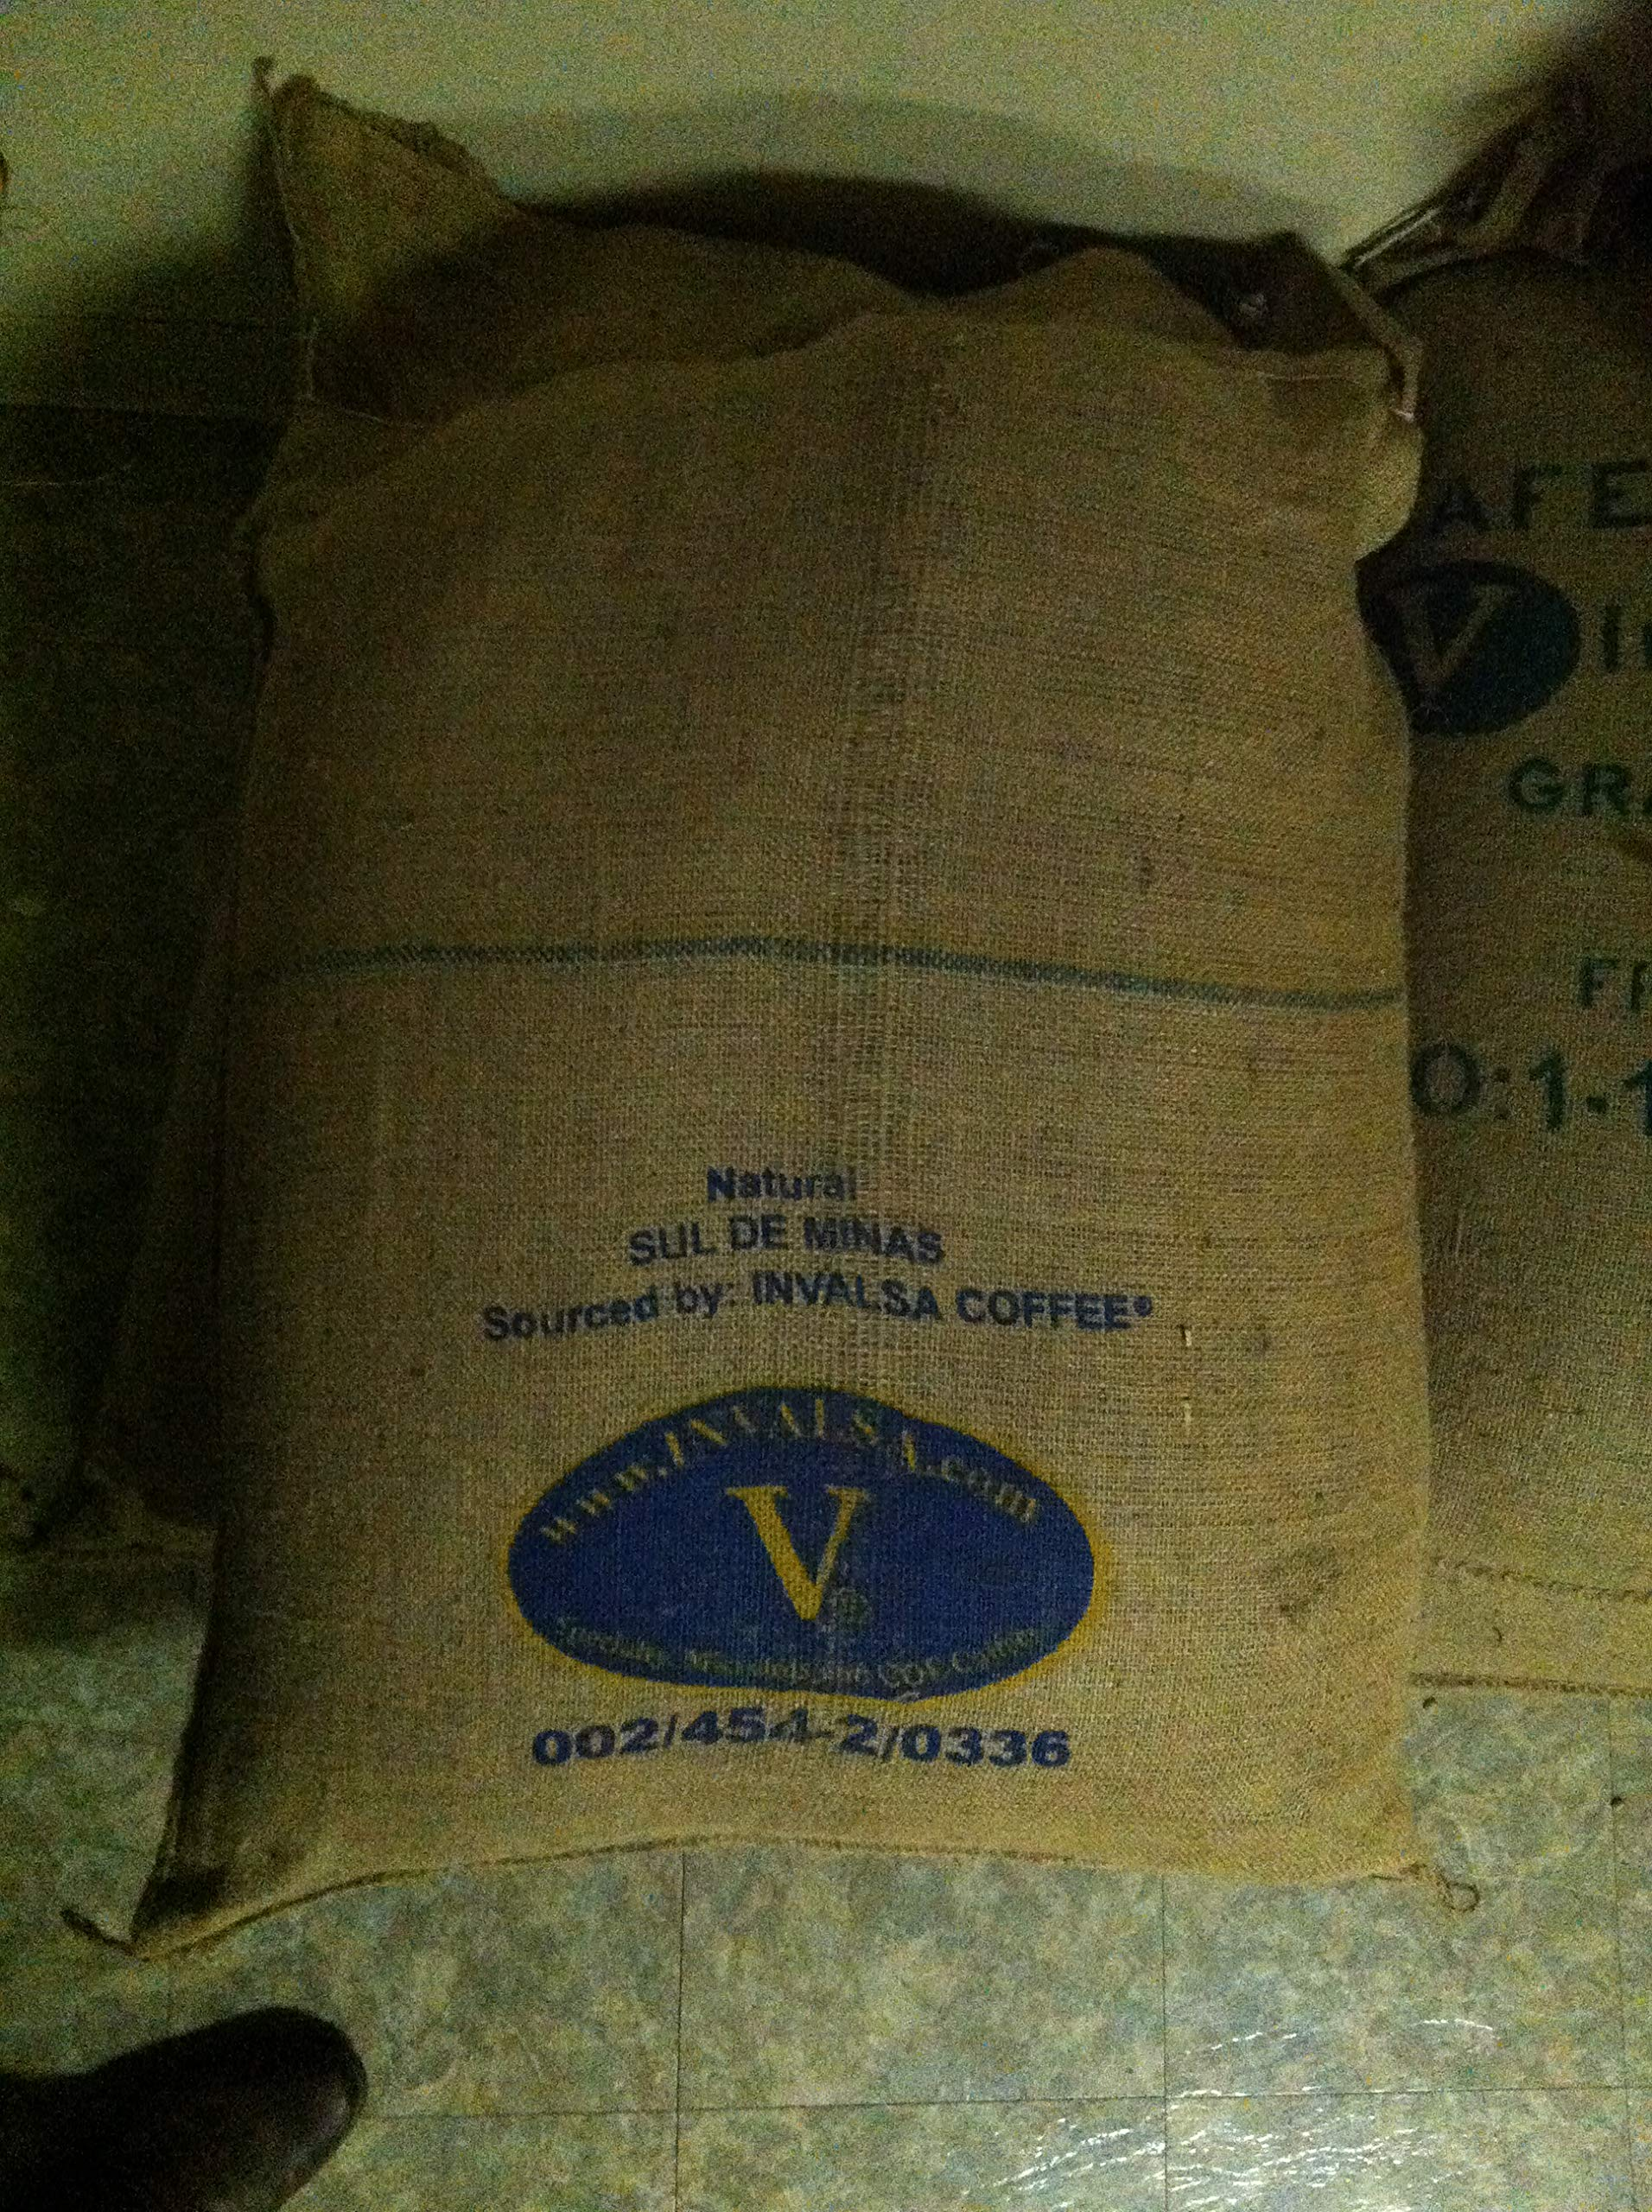 22 lbs BRAZIL SUL MINAS NATURAL PROCESS SPECIALTY AAA GREEN COFFEE by Invalsa Coffee (Image #8)